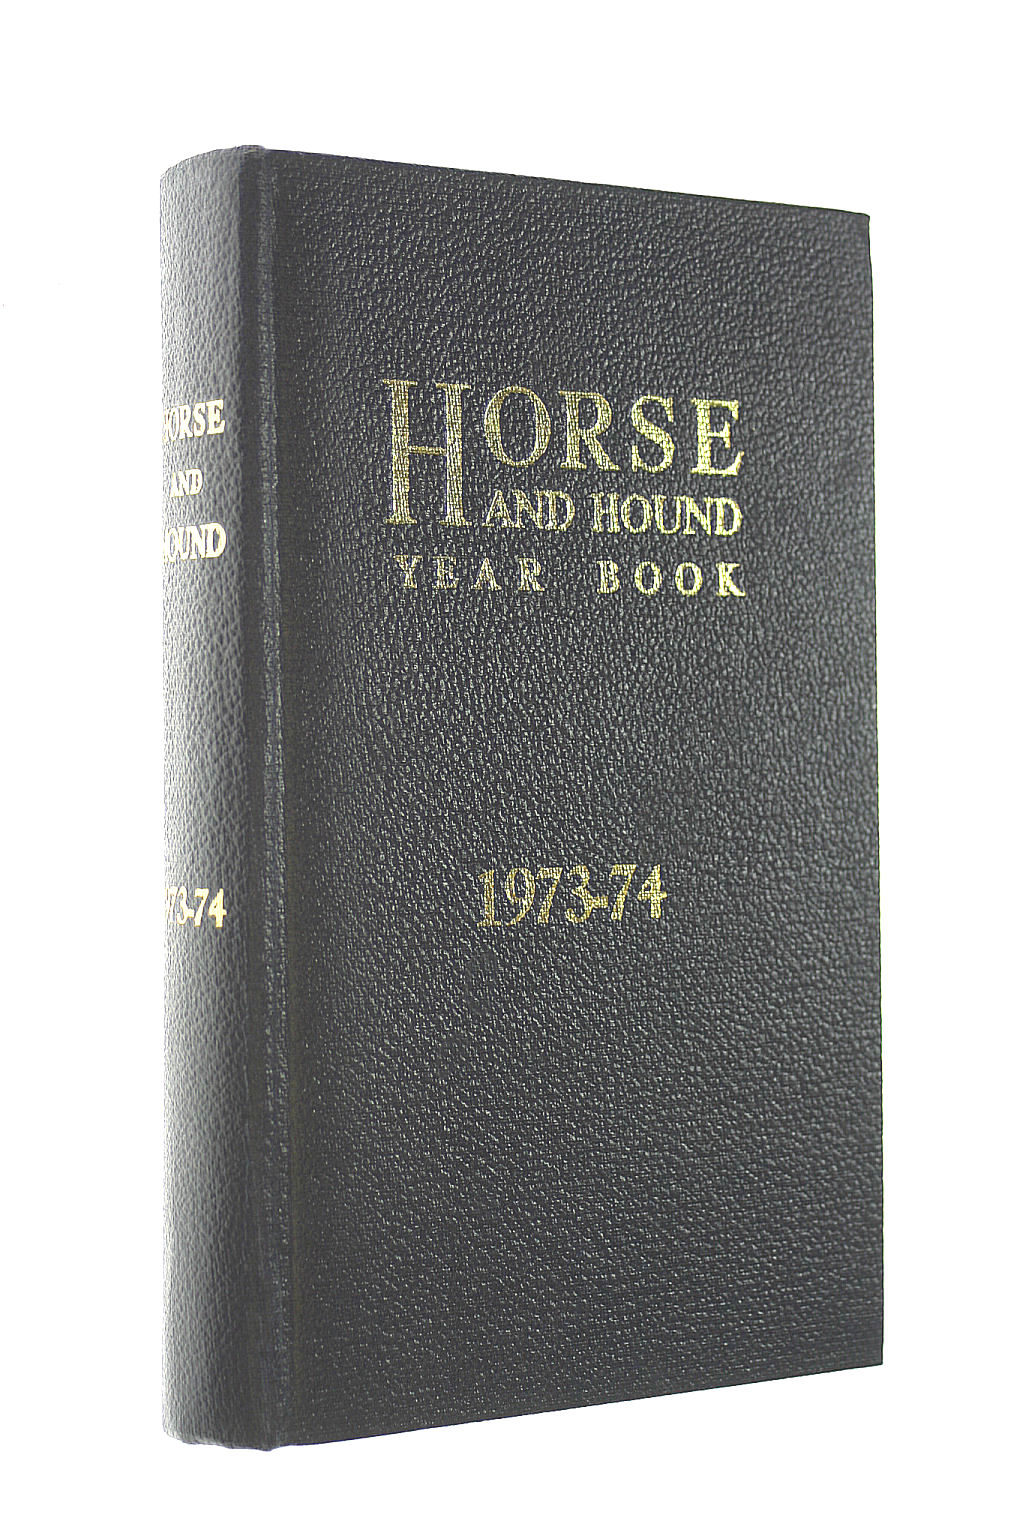 Image for Horse and Hound Year Book 1973-74